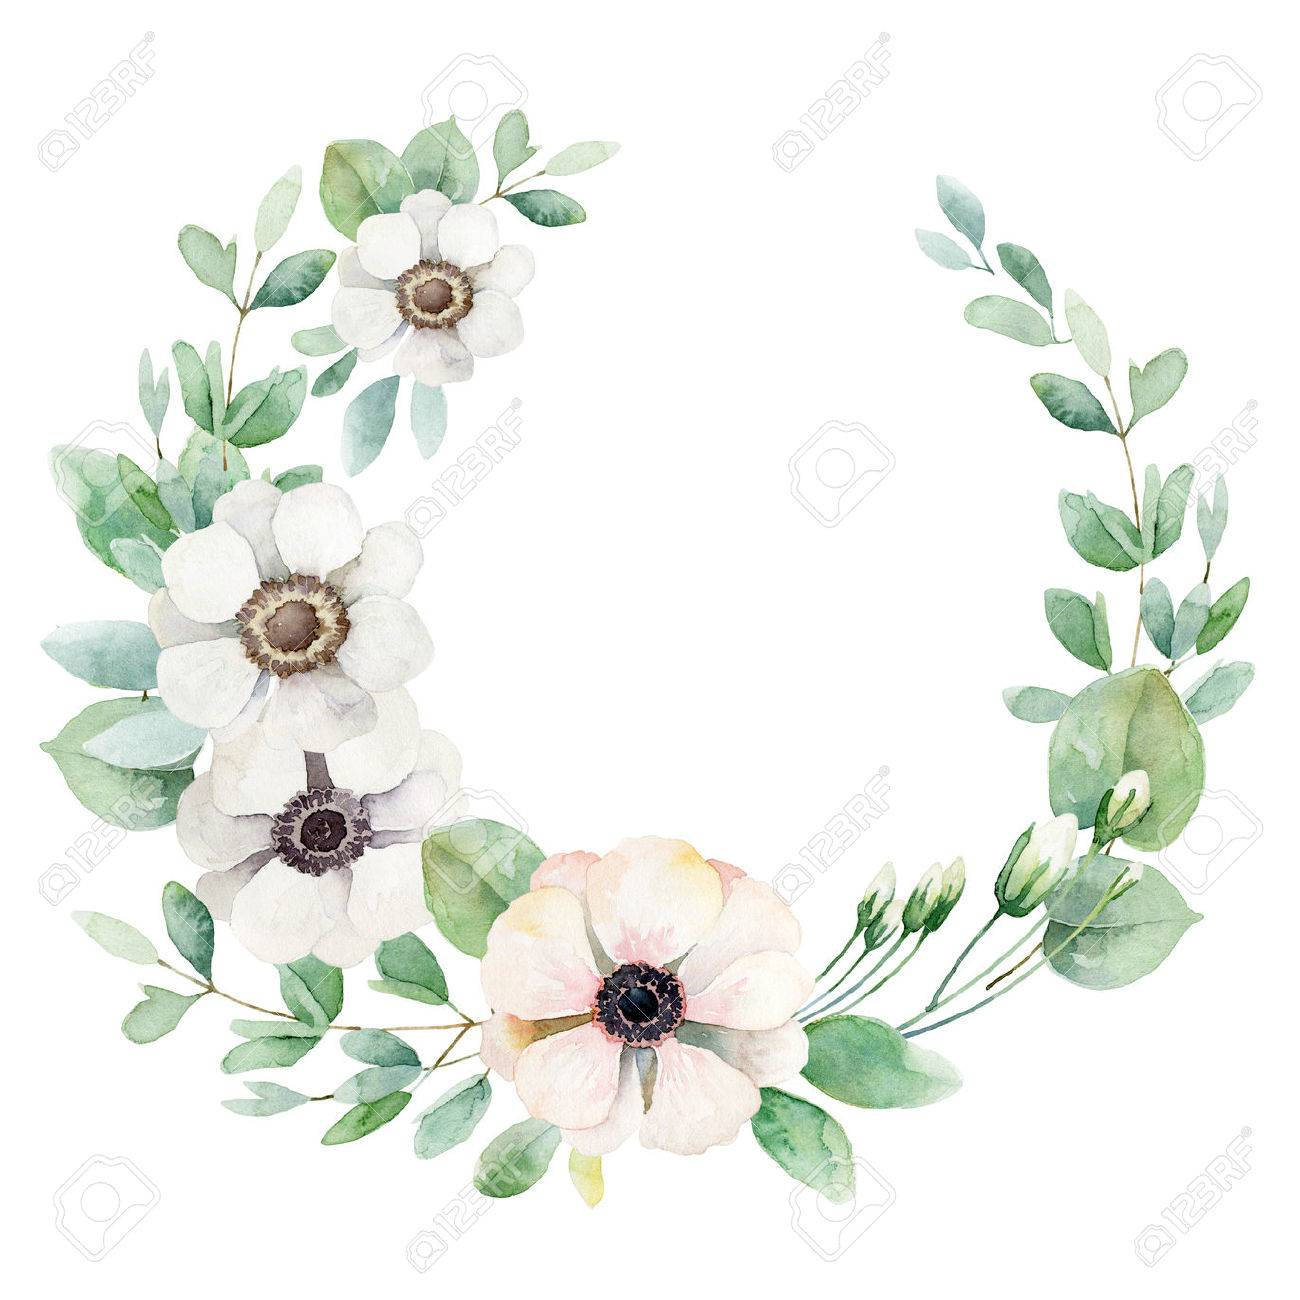 Round composition with white and pink anemones isolated on white background. Watercolor illustration - 57501532